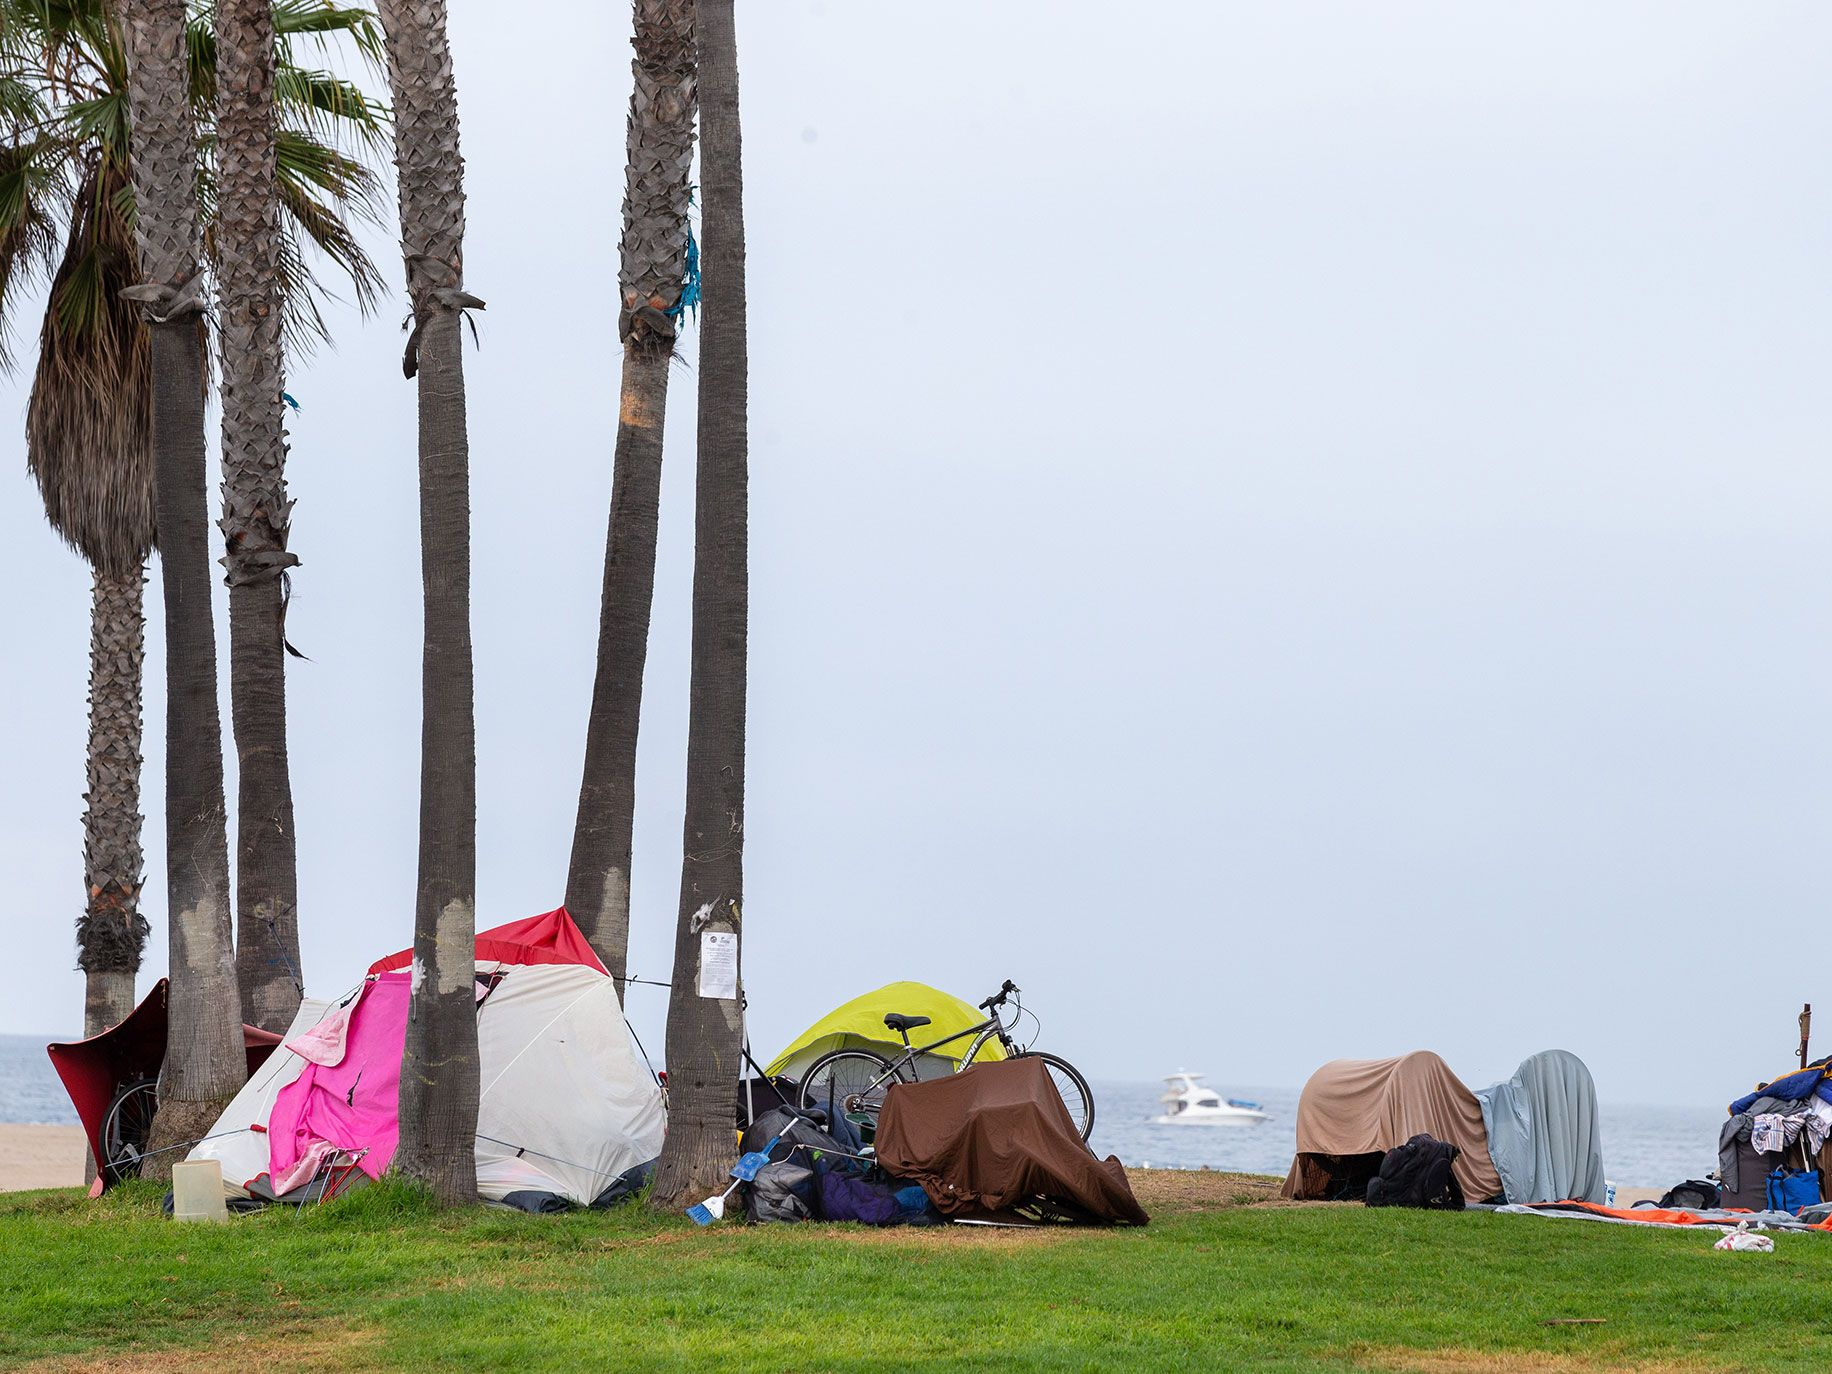 Every night, tents line Venice Beach for miles until just after sunrise, when police force campers to move their belongings.